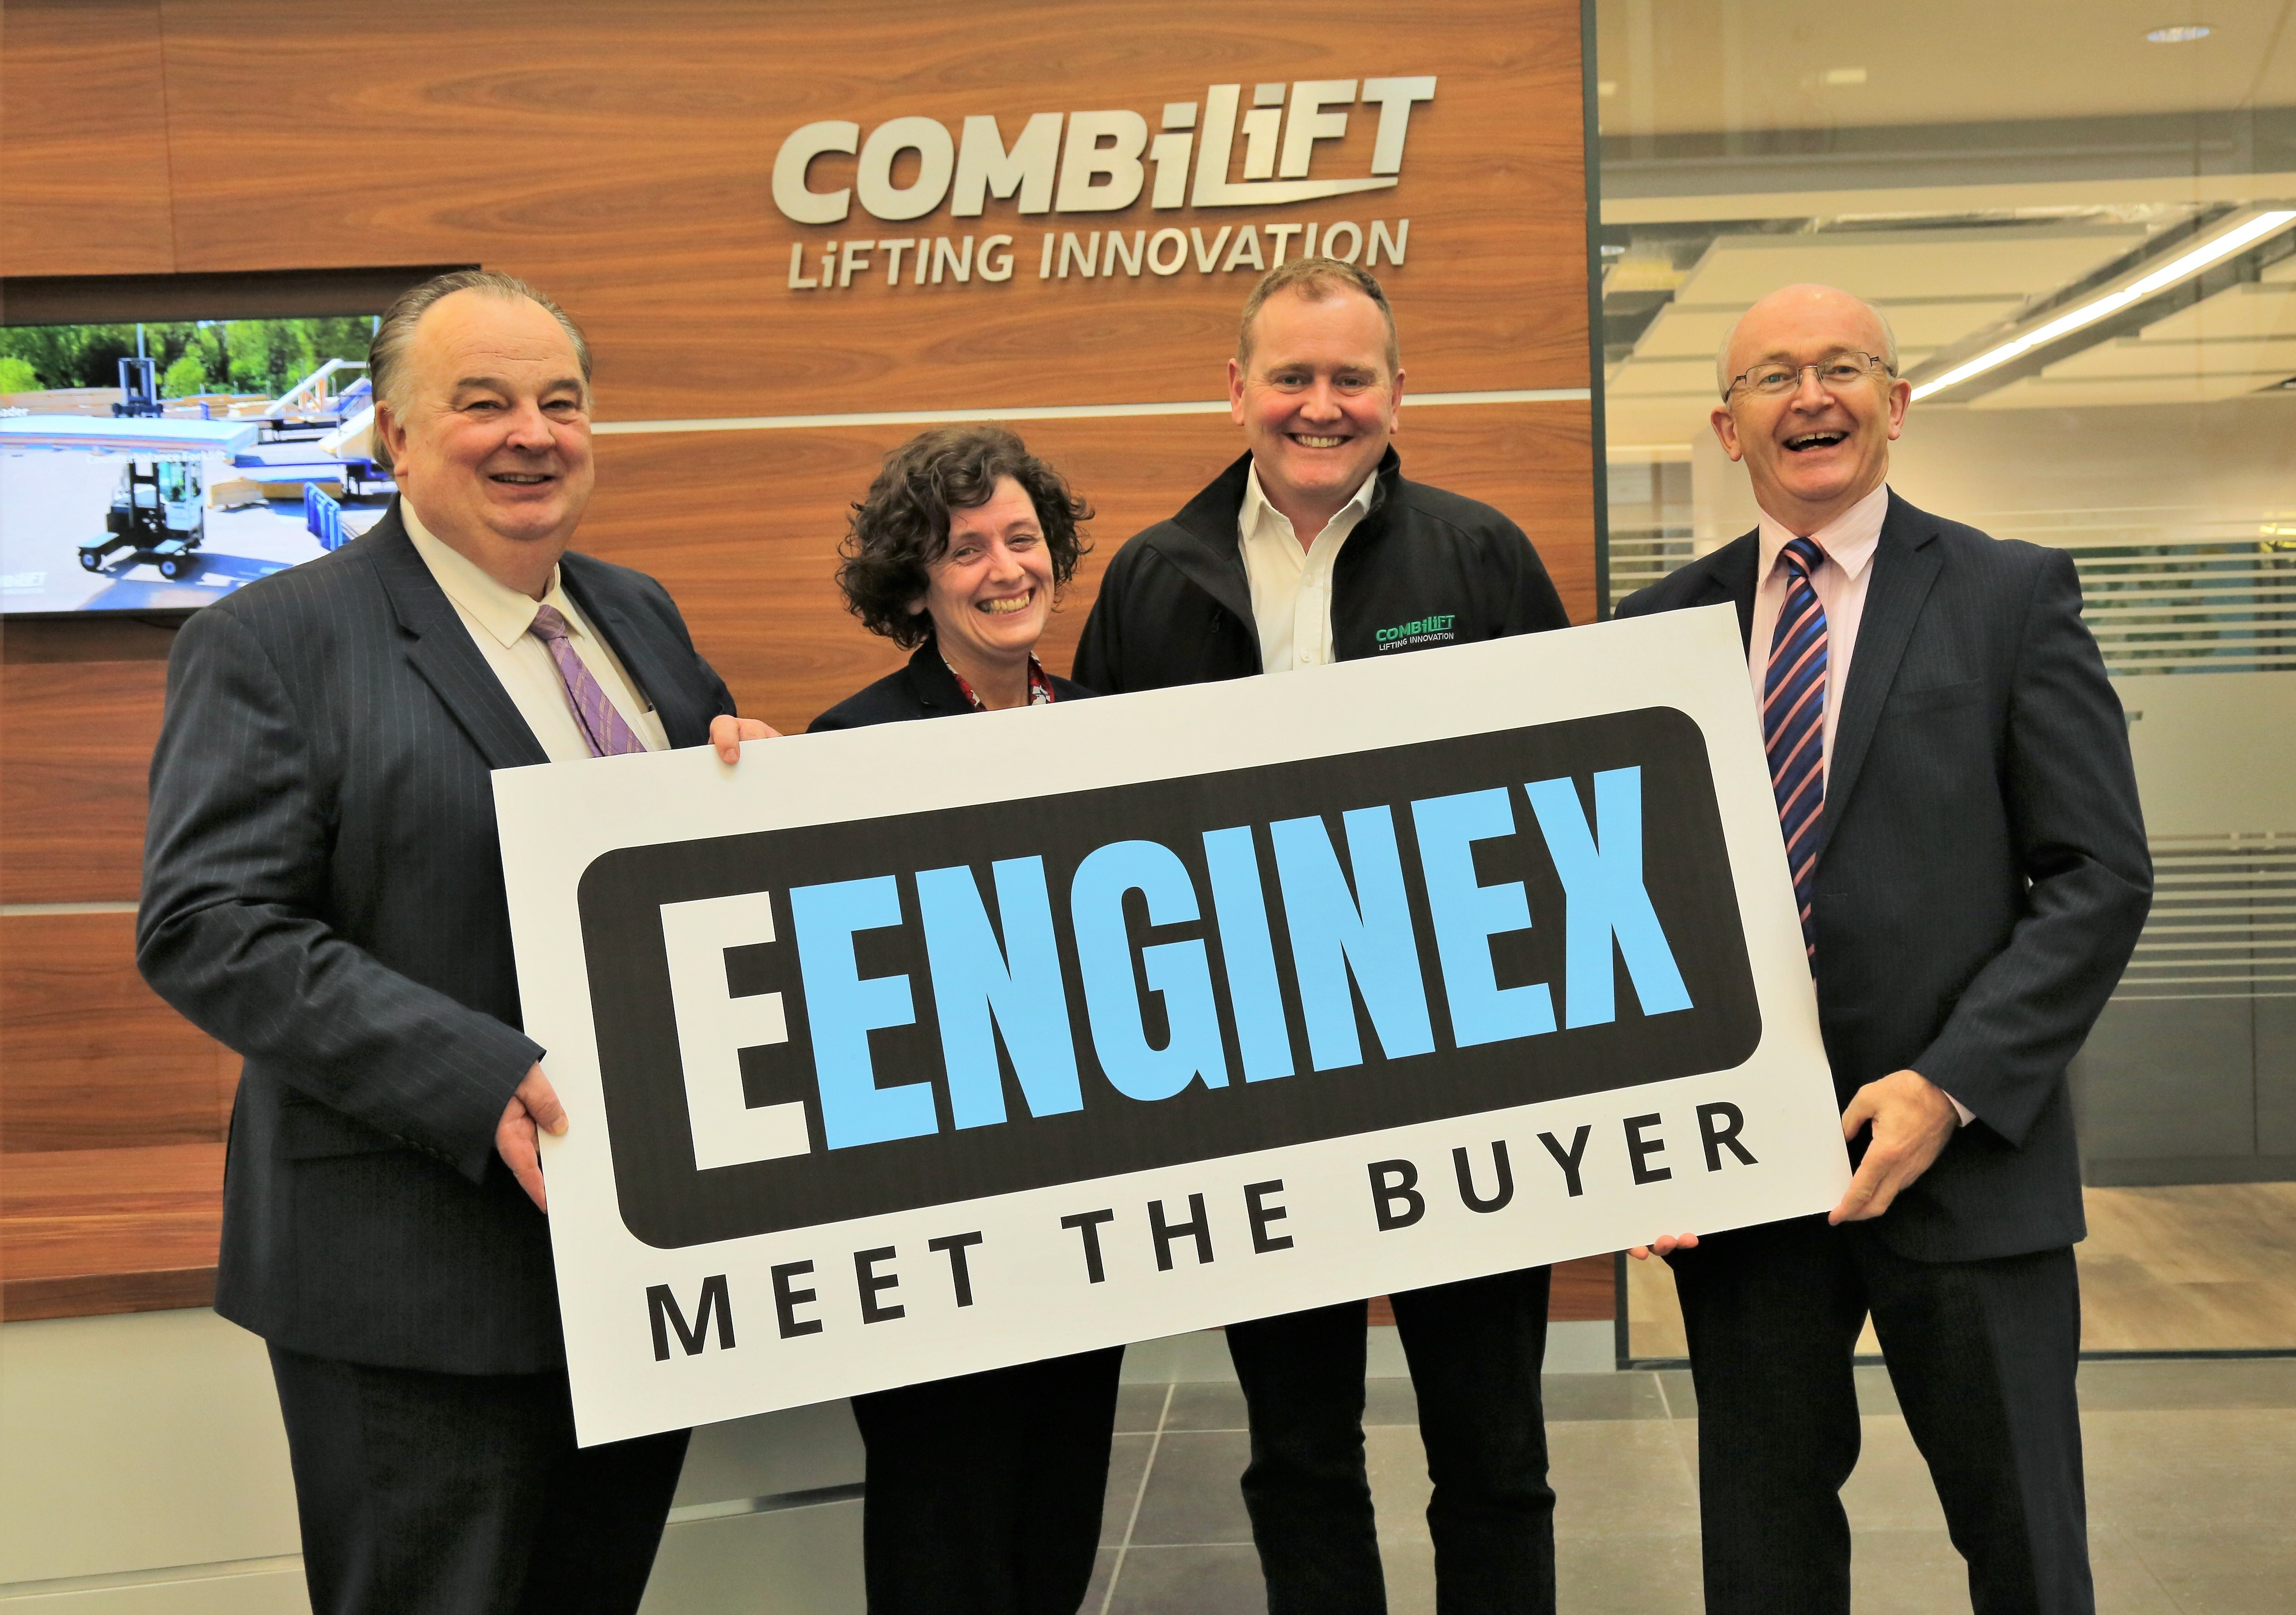 International Engineering Meet the Buyer Event to take place in Monaghan